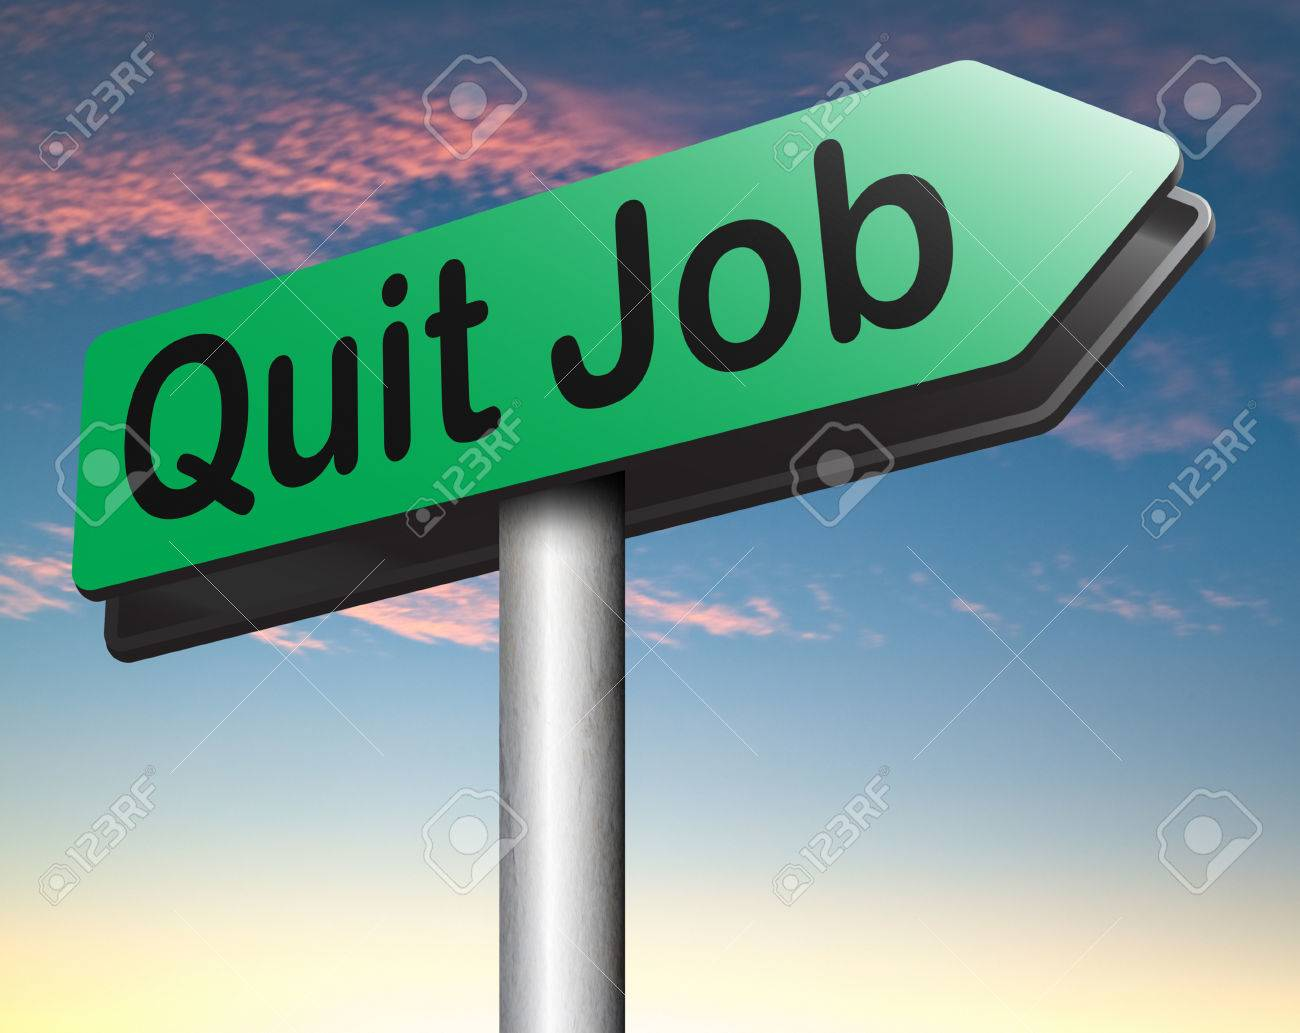 quitting job search new profession and start other career stock photo quitting job search new profession and start other career resigning from work and getting unemployed